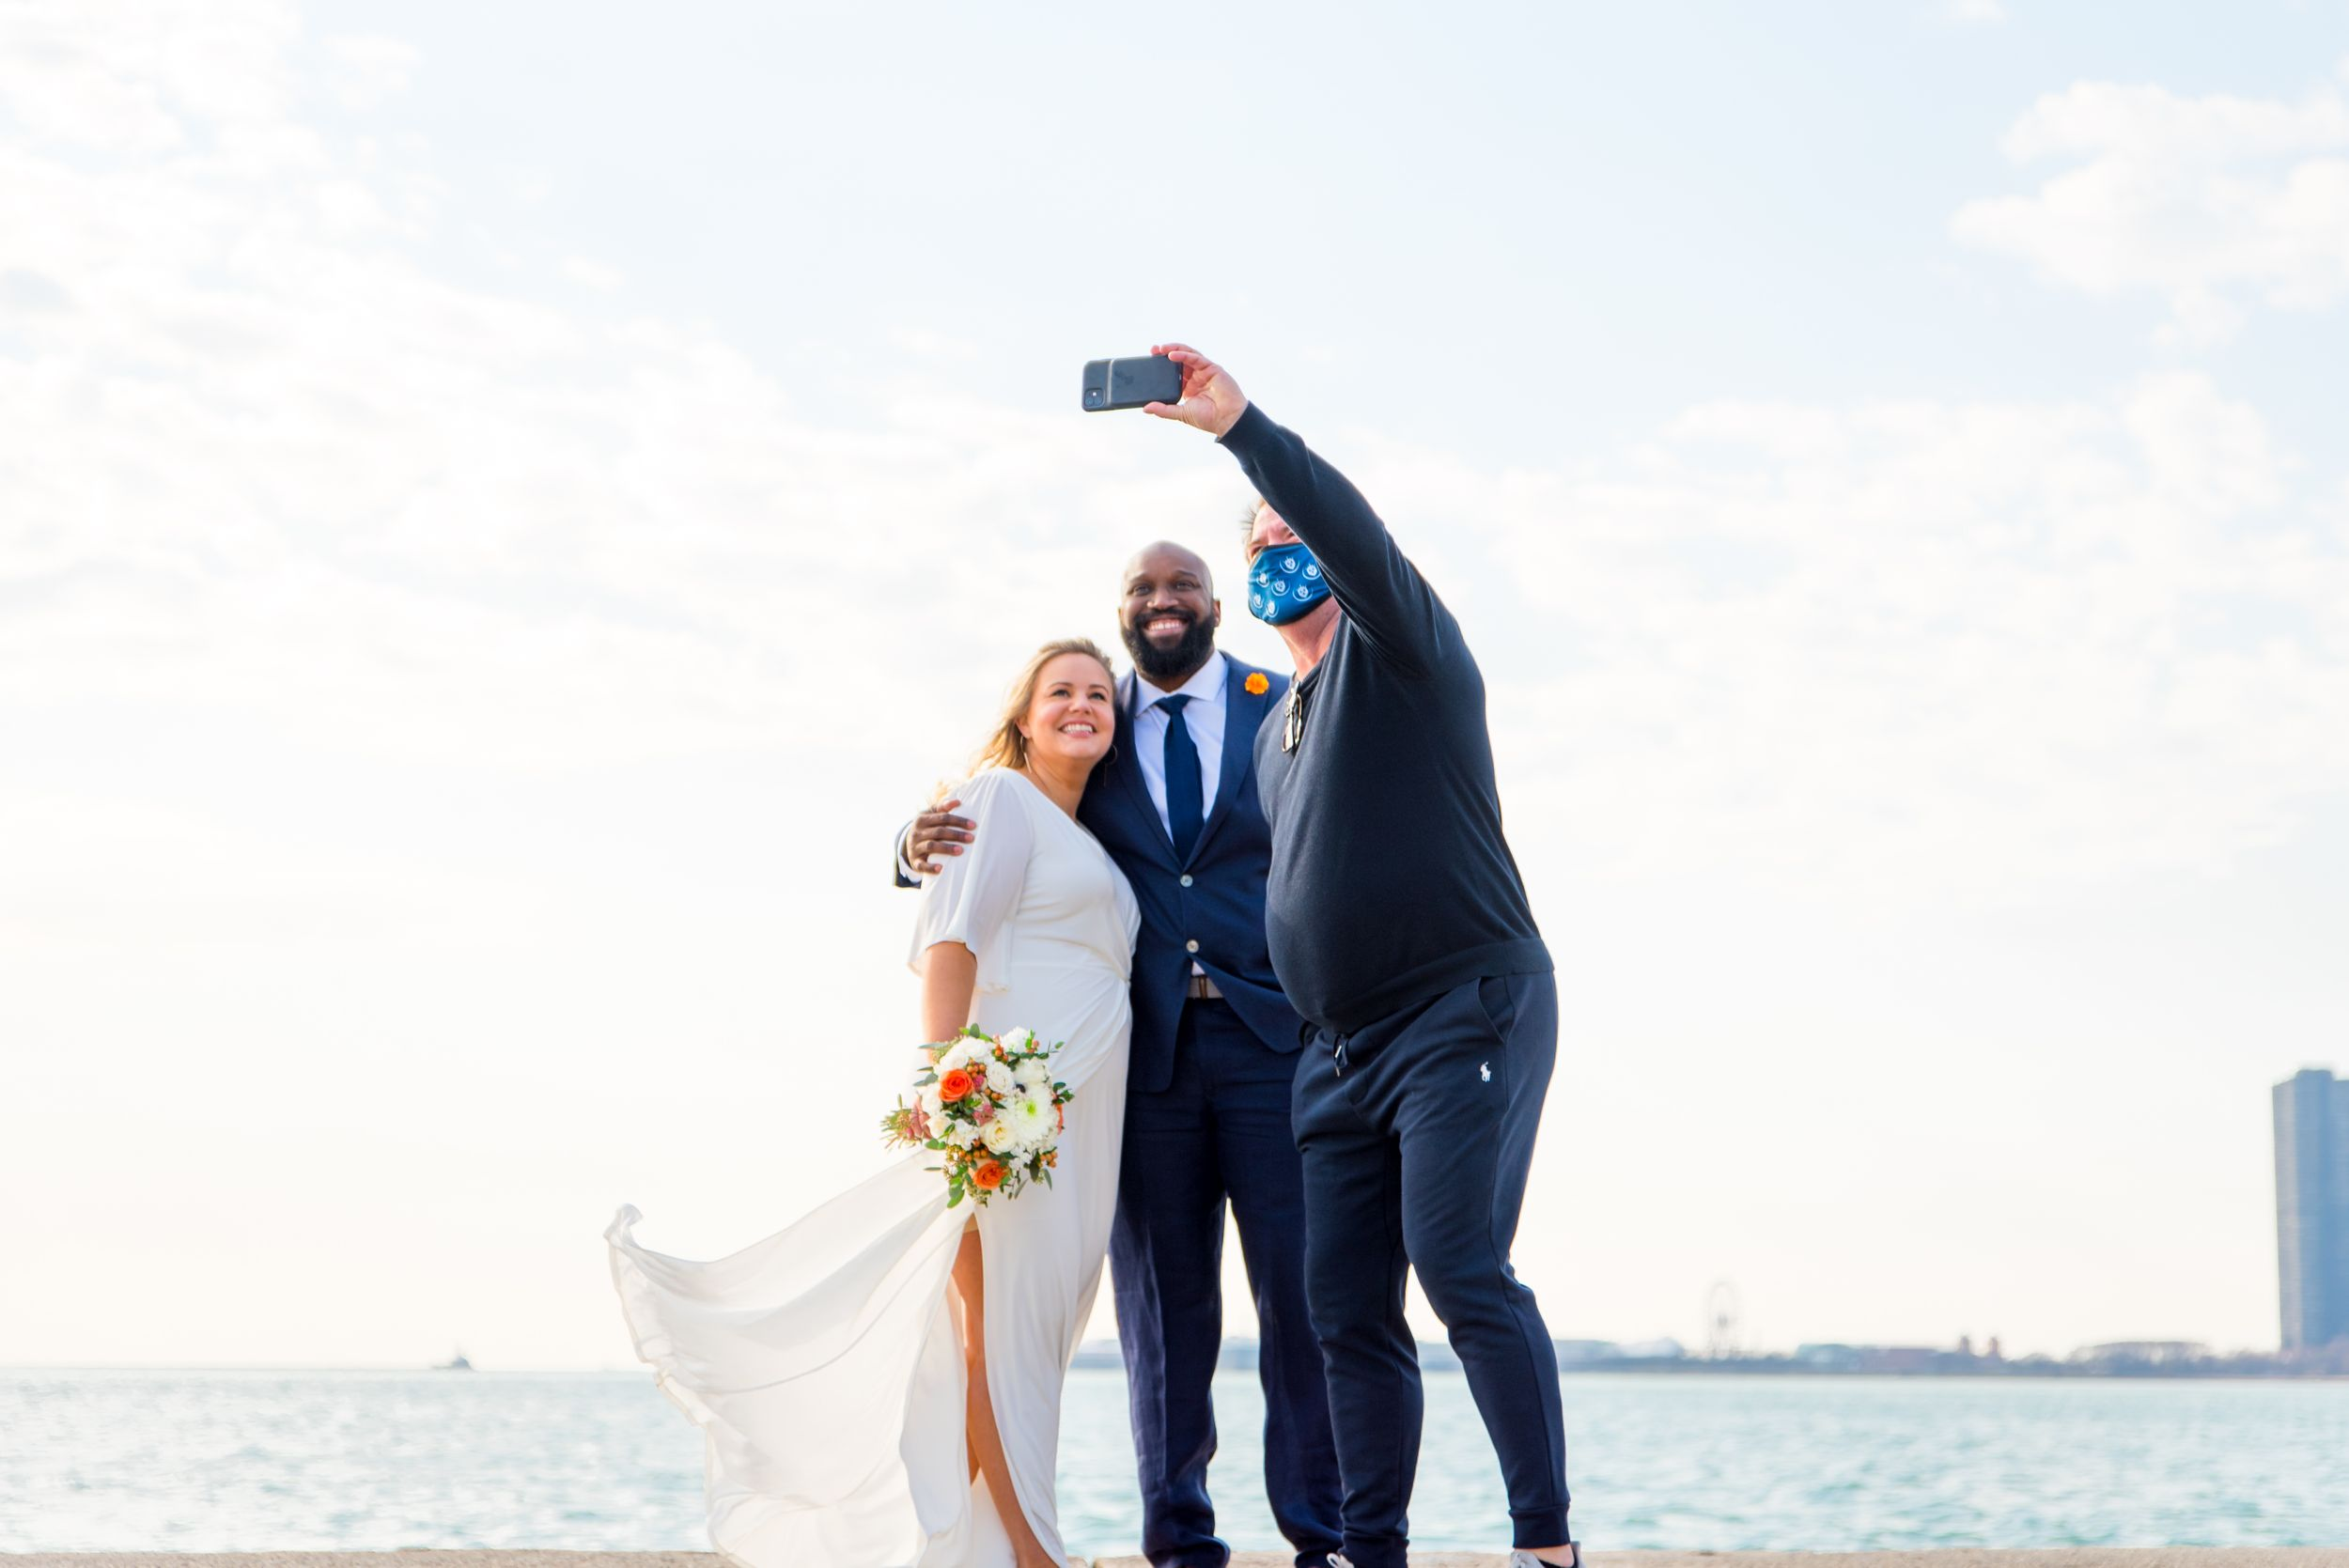 wedding pictures at north avenue beach chicago couple taking selfie with someone passing by